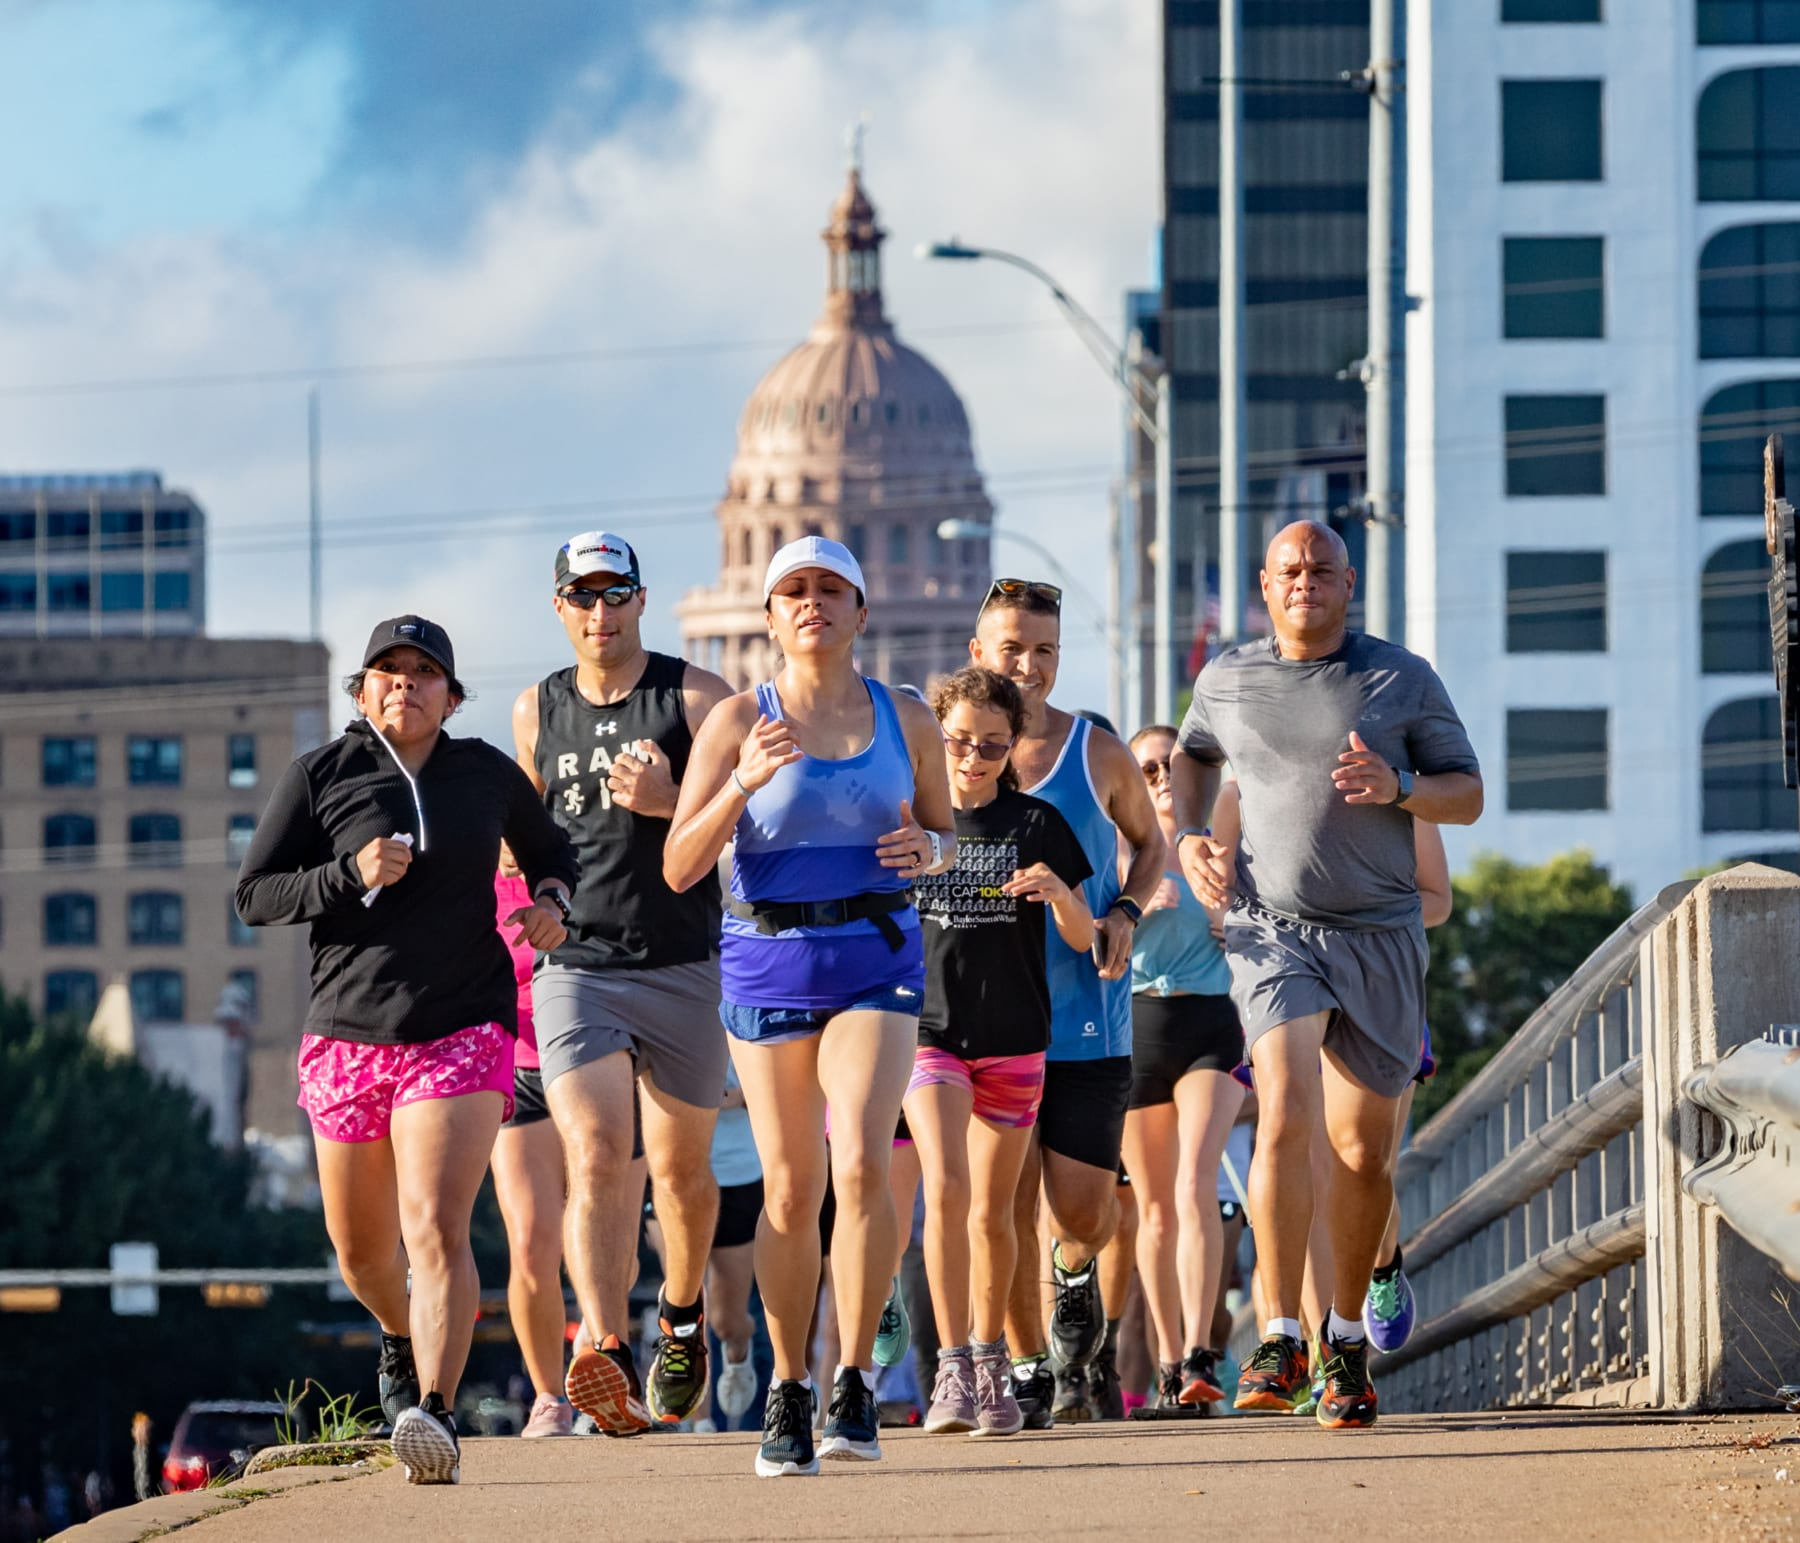 Image of runners running during the 2019 free Global Running Day event on the Congress Avenue Bridge in Austin with the Texas State Capitol in the background.